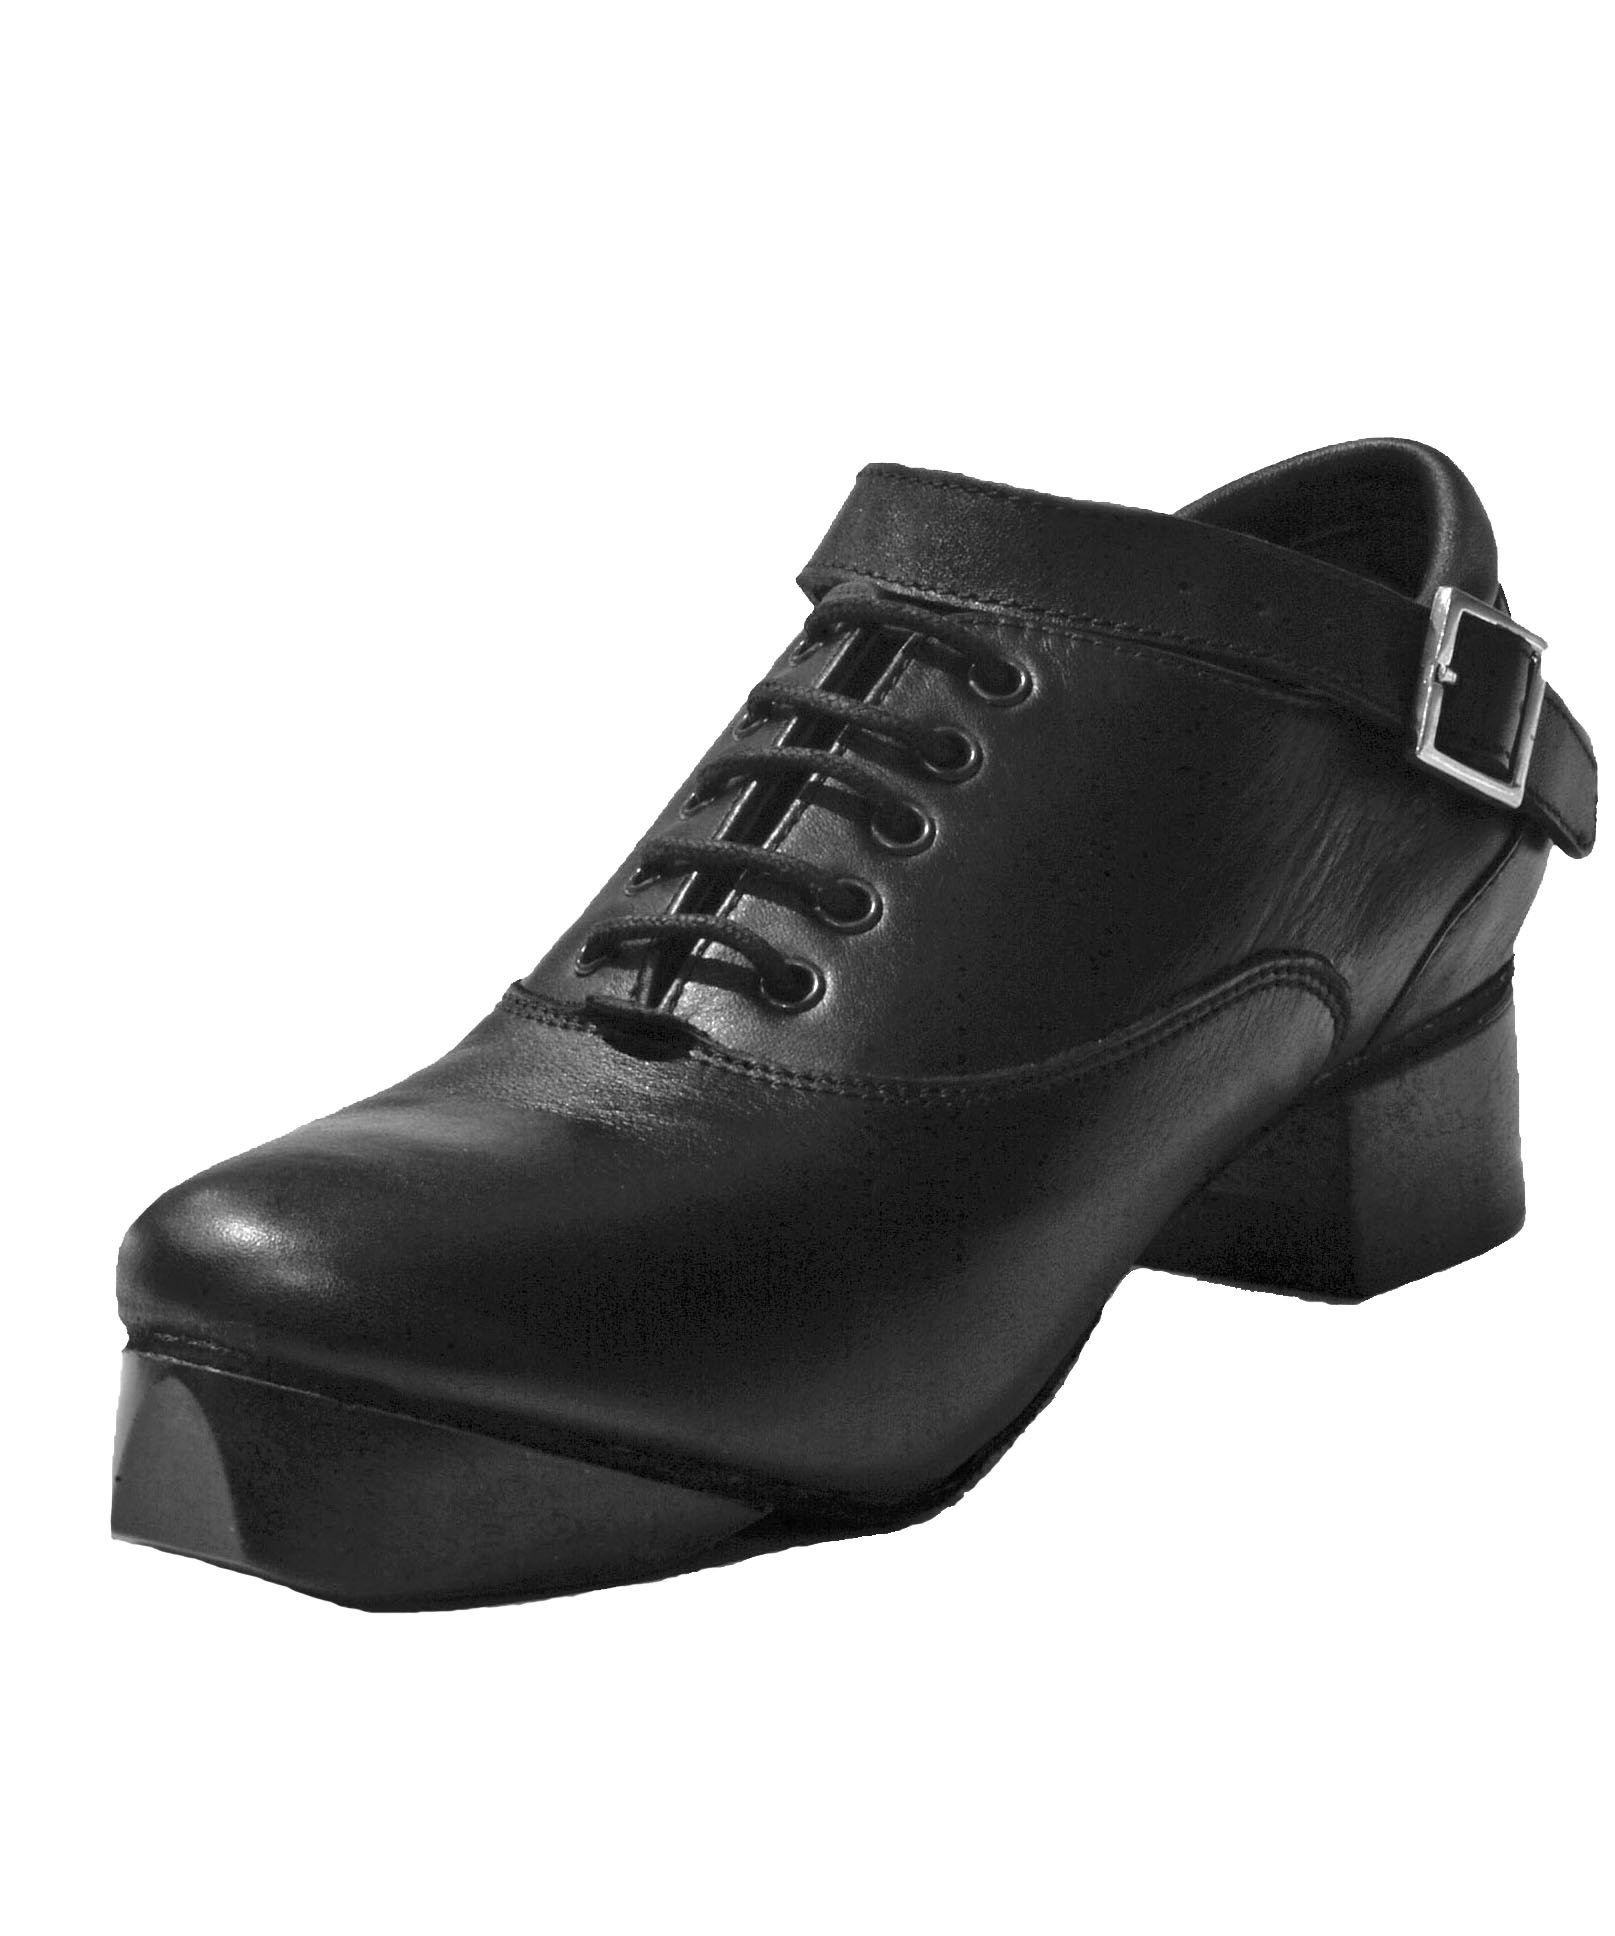 Evolution Unisex black leather Irish Dance Hard Shoes 6 UK